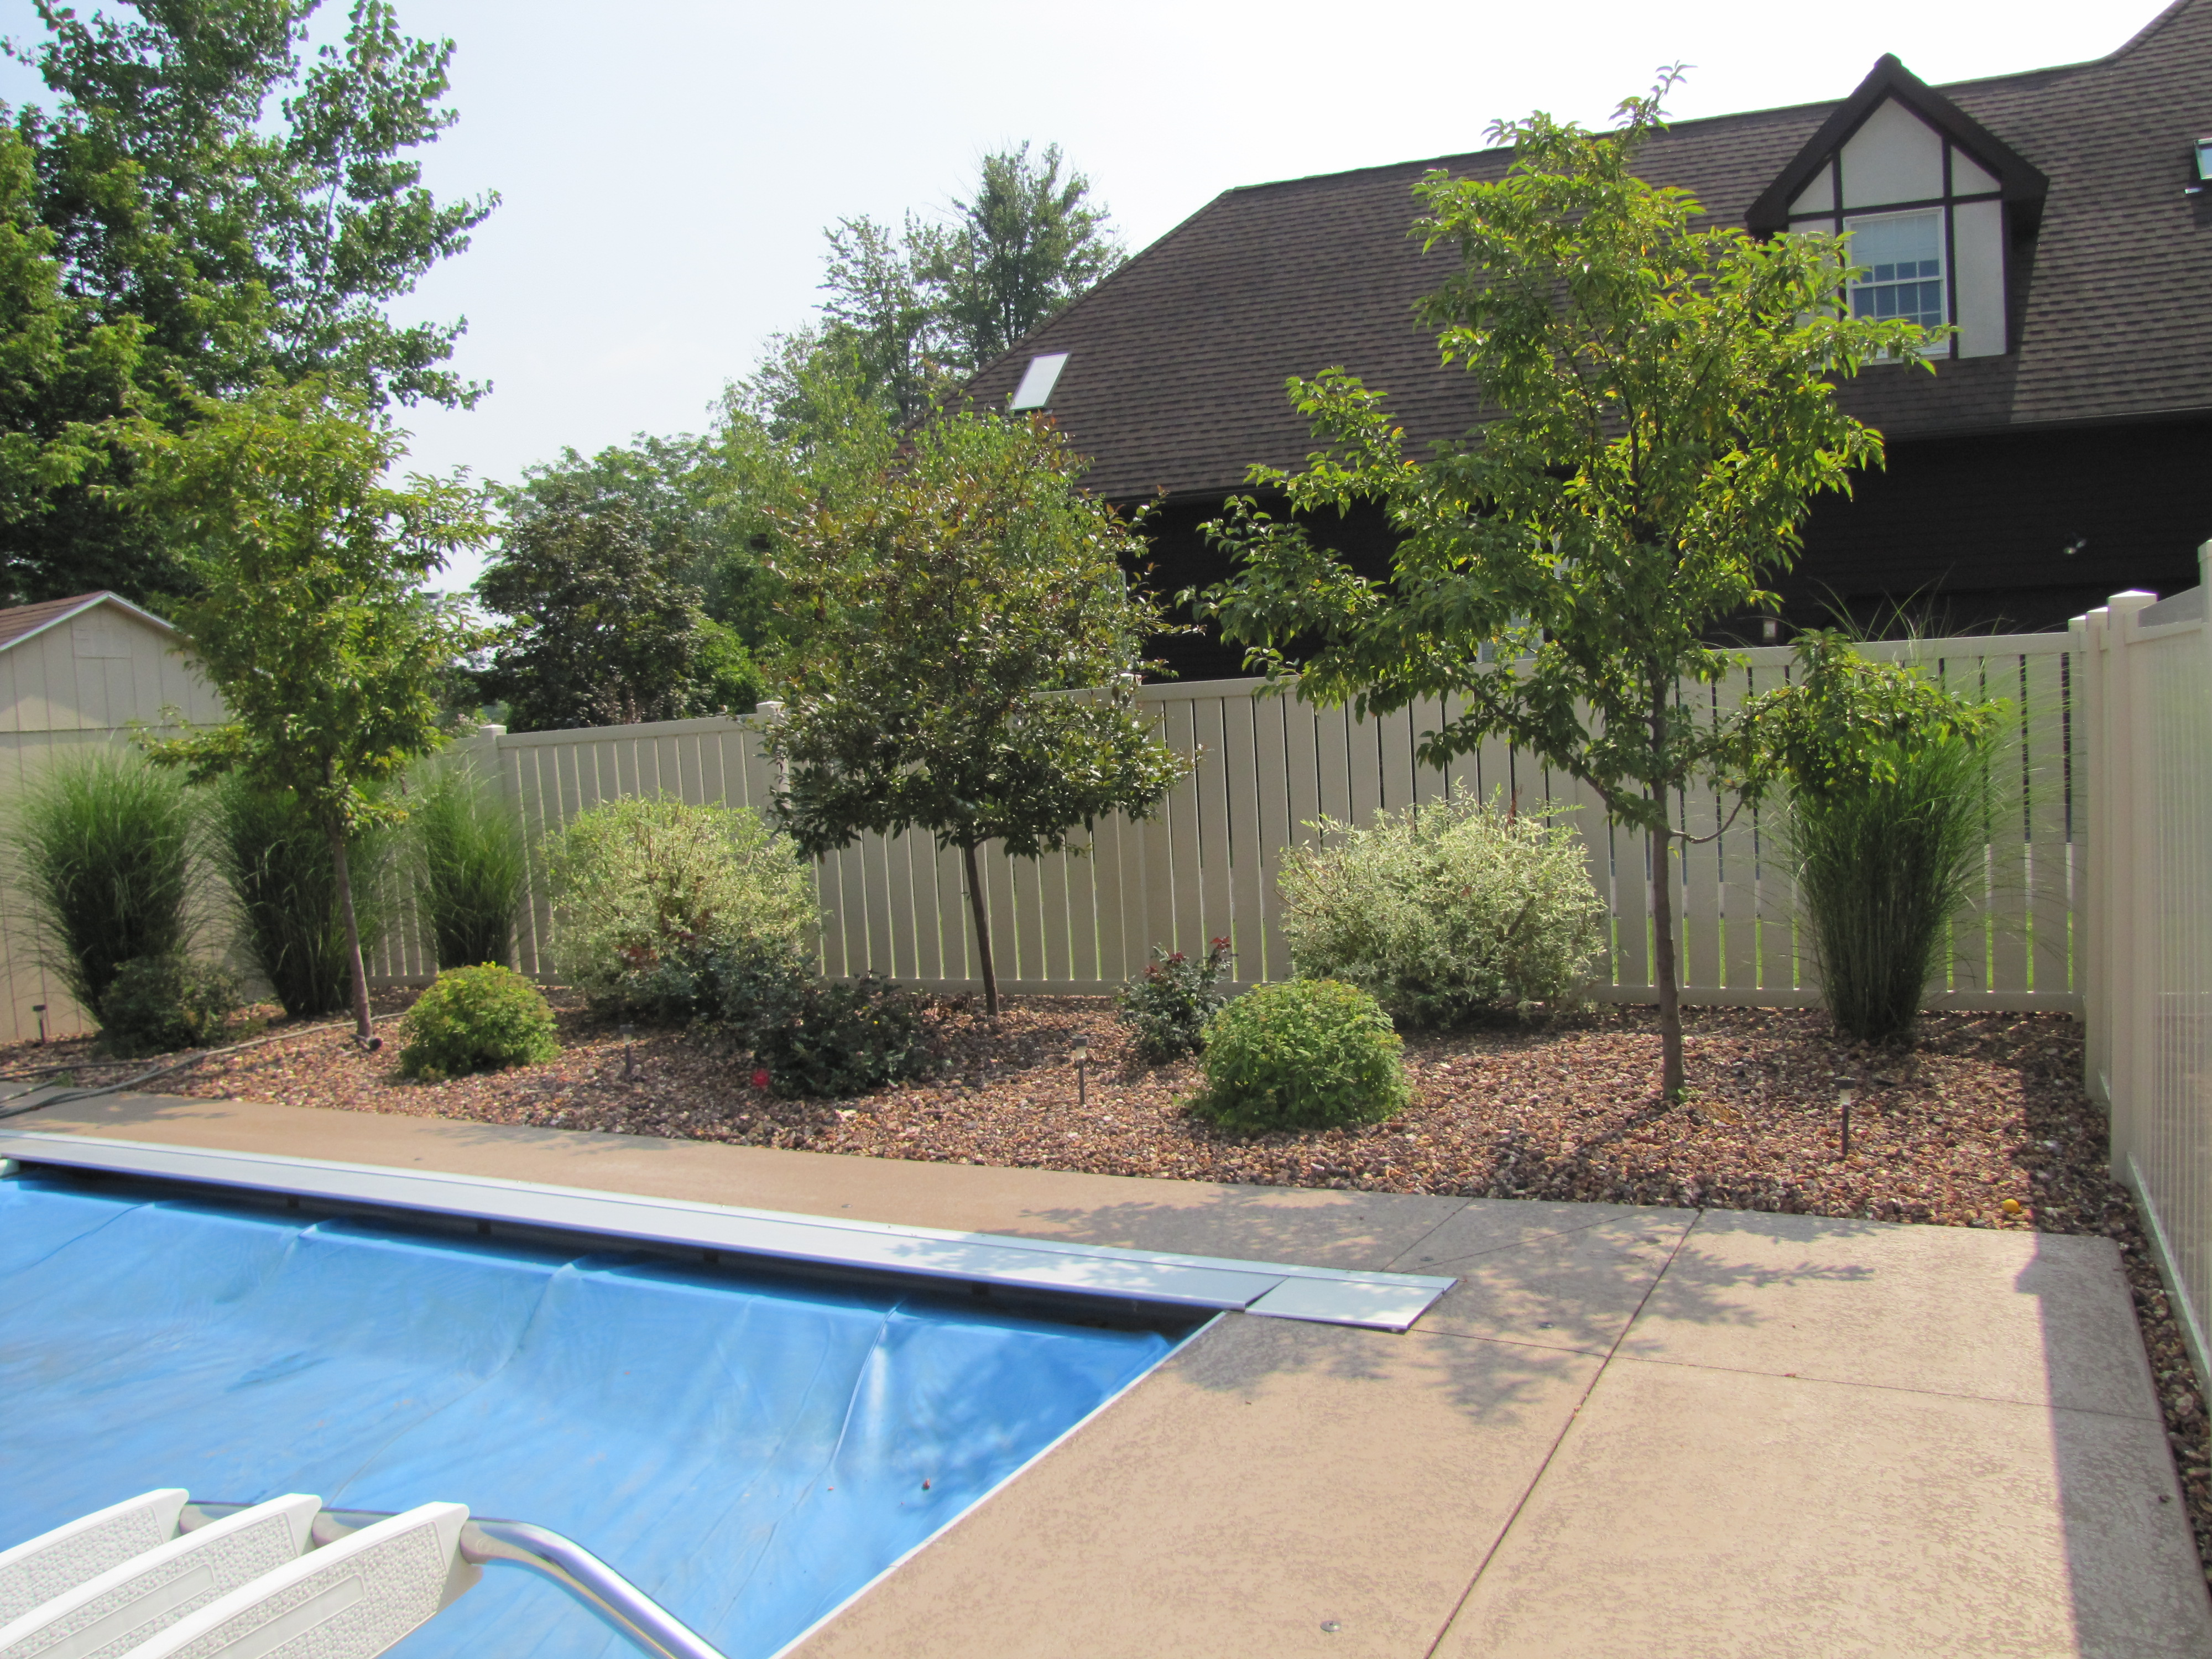 Landscape photo gallerygreenscapes garden center for Ideas for landscaping pool area